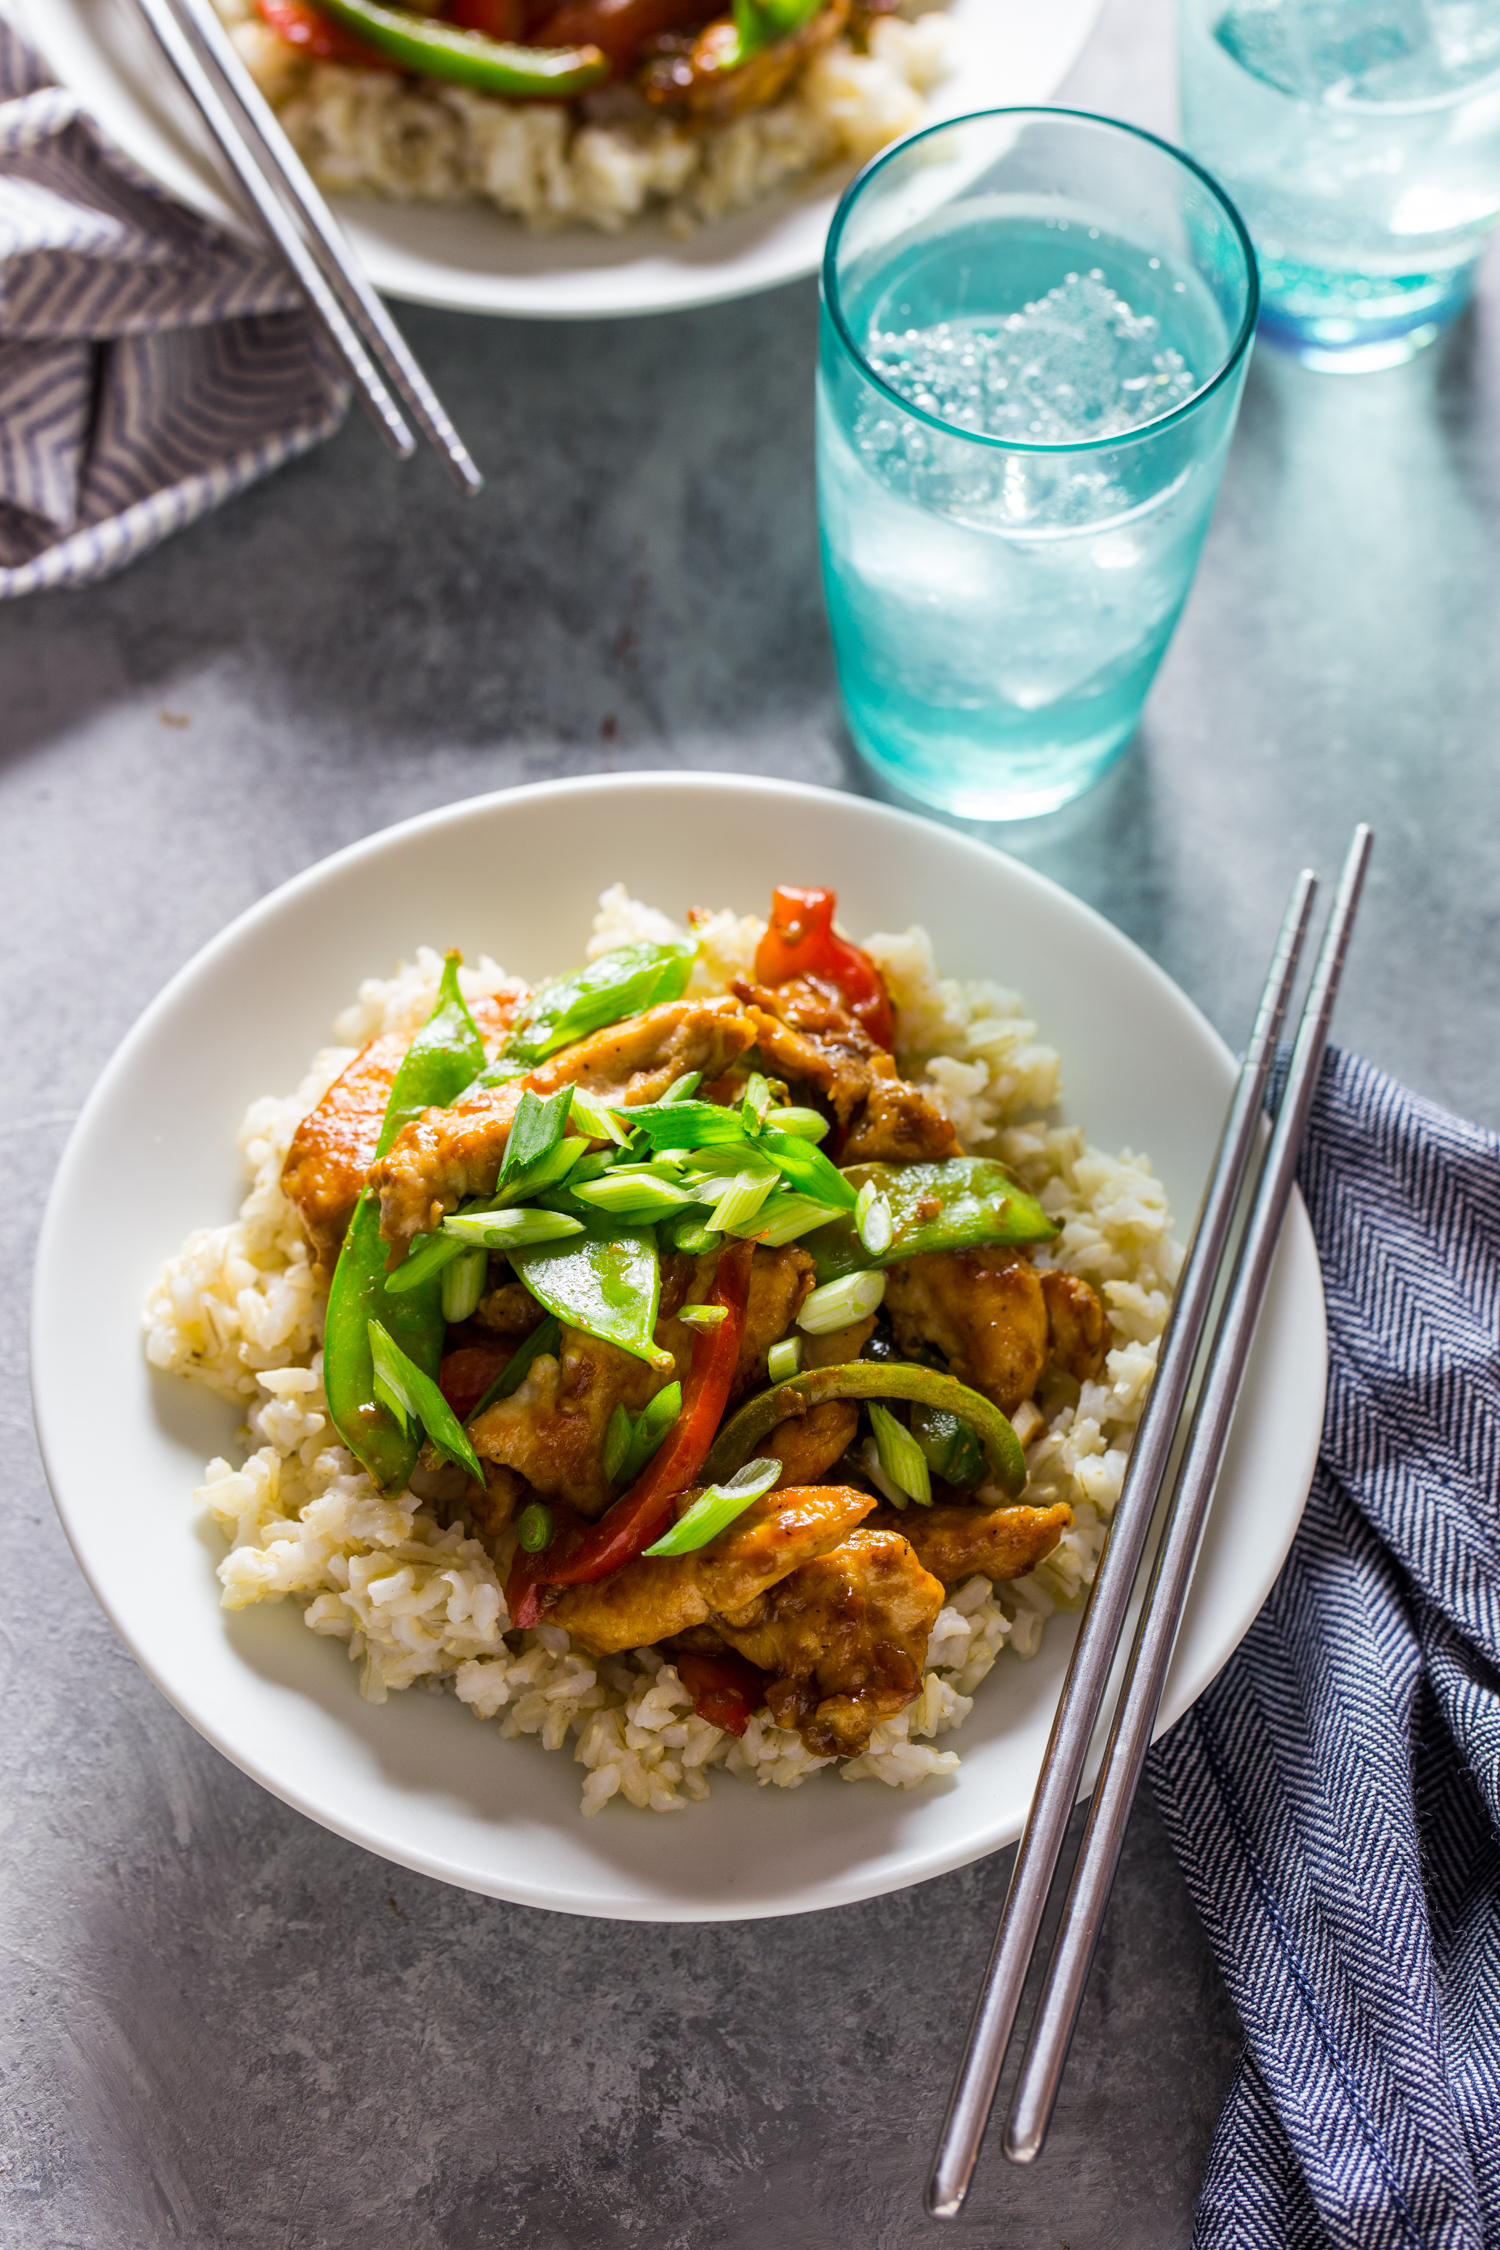 Ginger chicken stir fry jelly toast quick and easy ginger chicken stir fry for a busy weeknight forumfinder Image collections